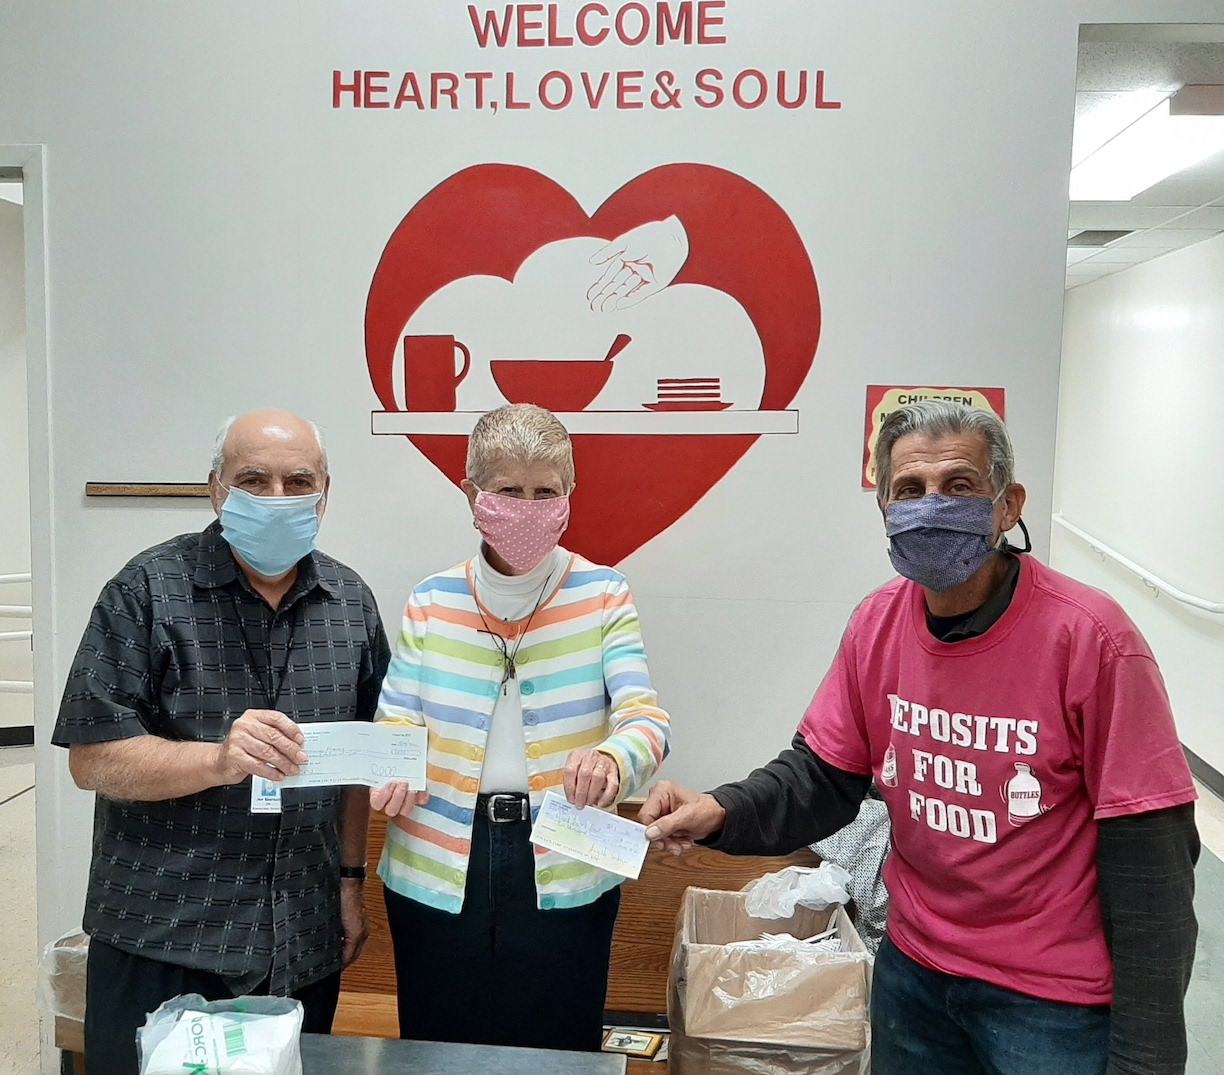 From left: Joe Sbarbati, associate director at Community Missions; Sister Beth Brosmer, former executive director at Heart, Love & Soul Food Pantry and Dining Room; and Angelo Sarkees, Deposits 4 Food founder.